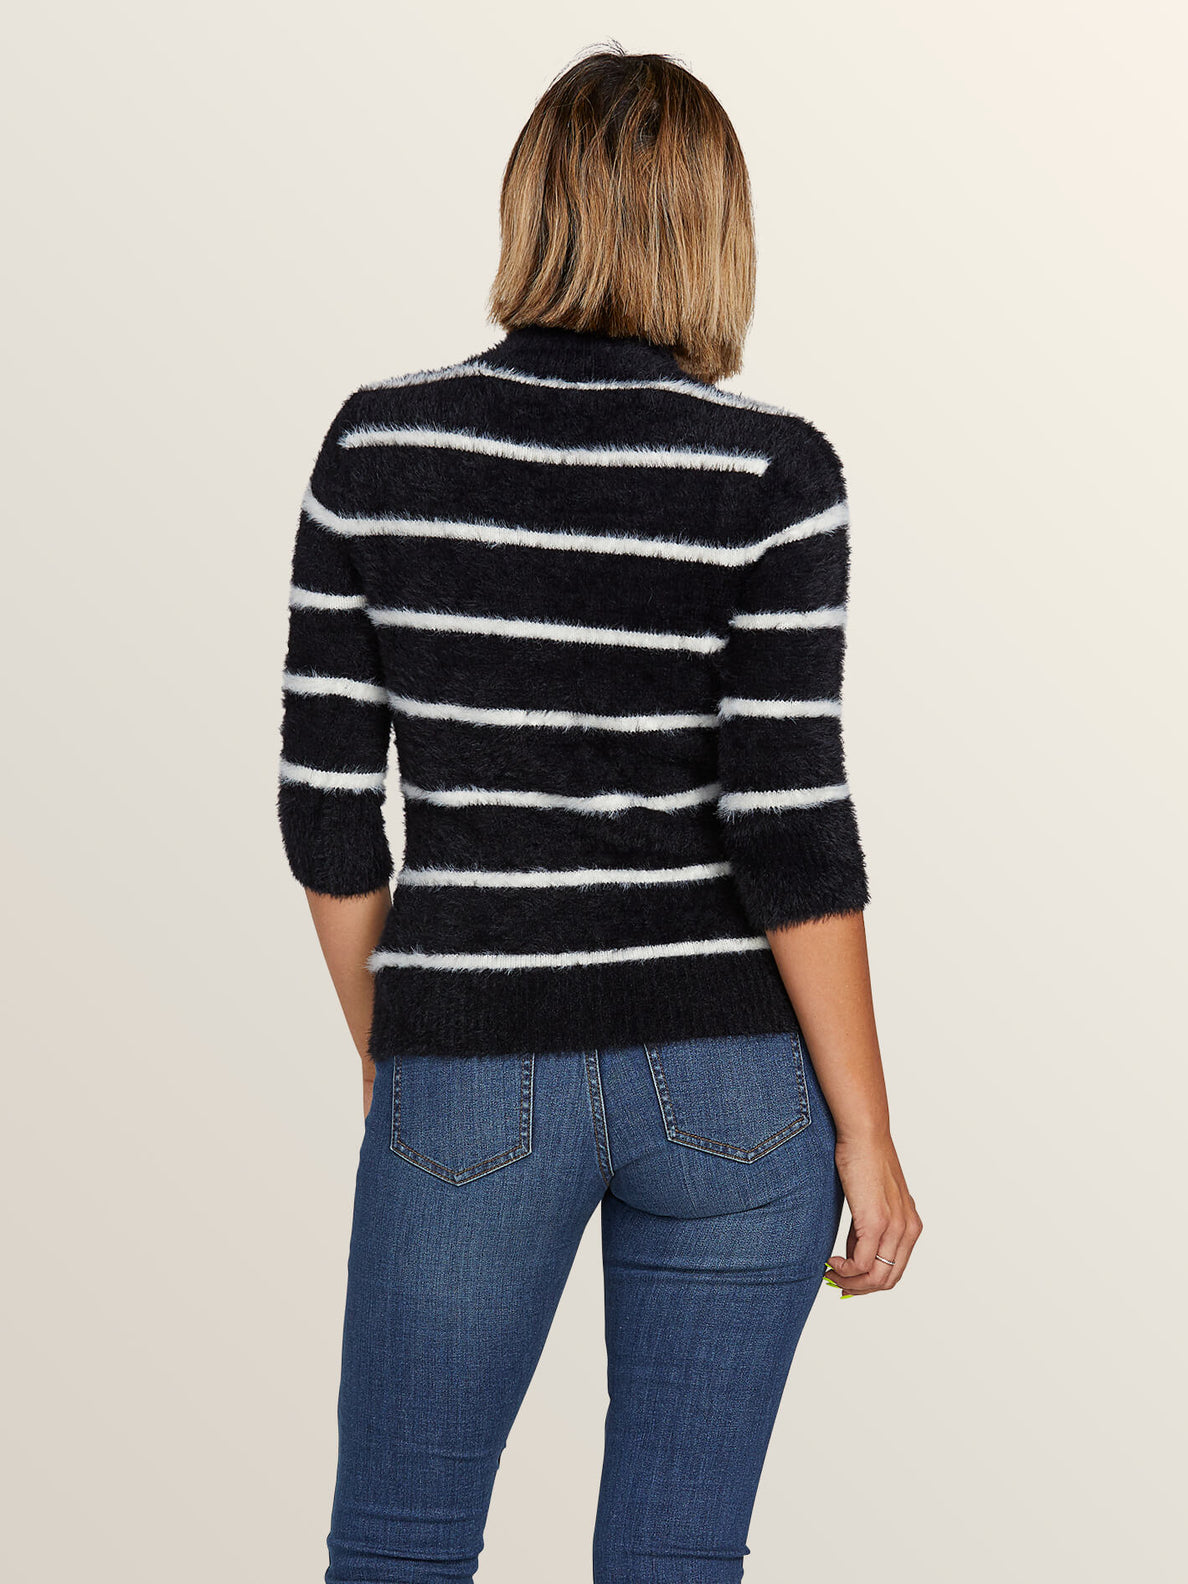 Bunney Riot Sweater In Black White, Back View